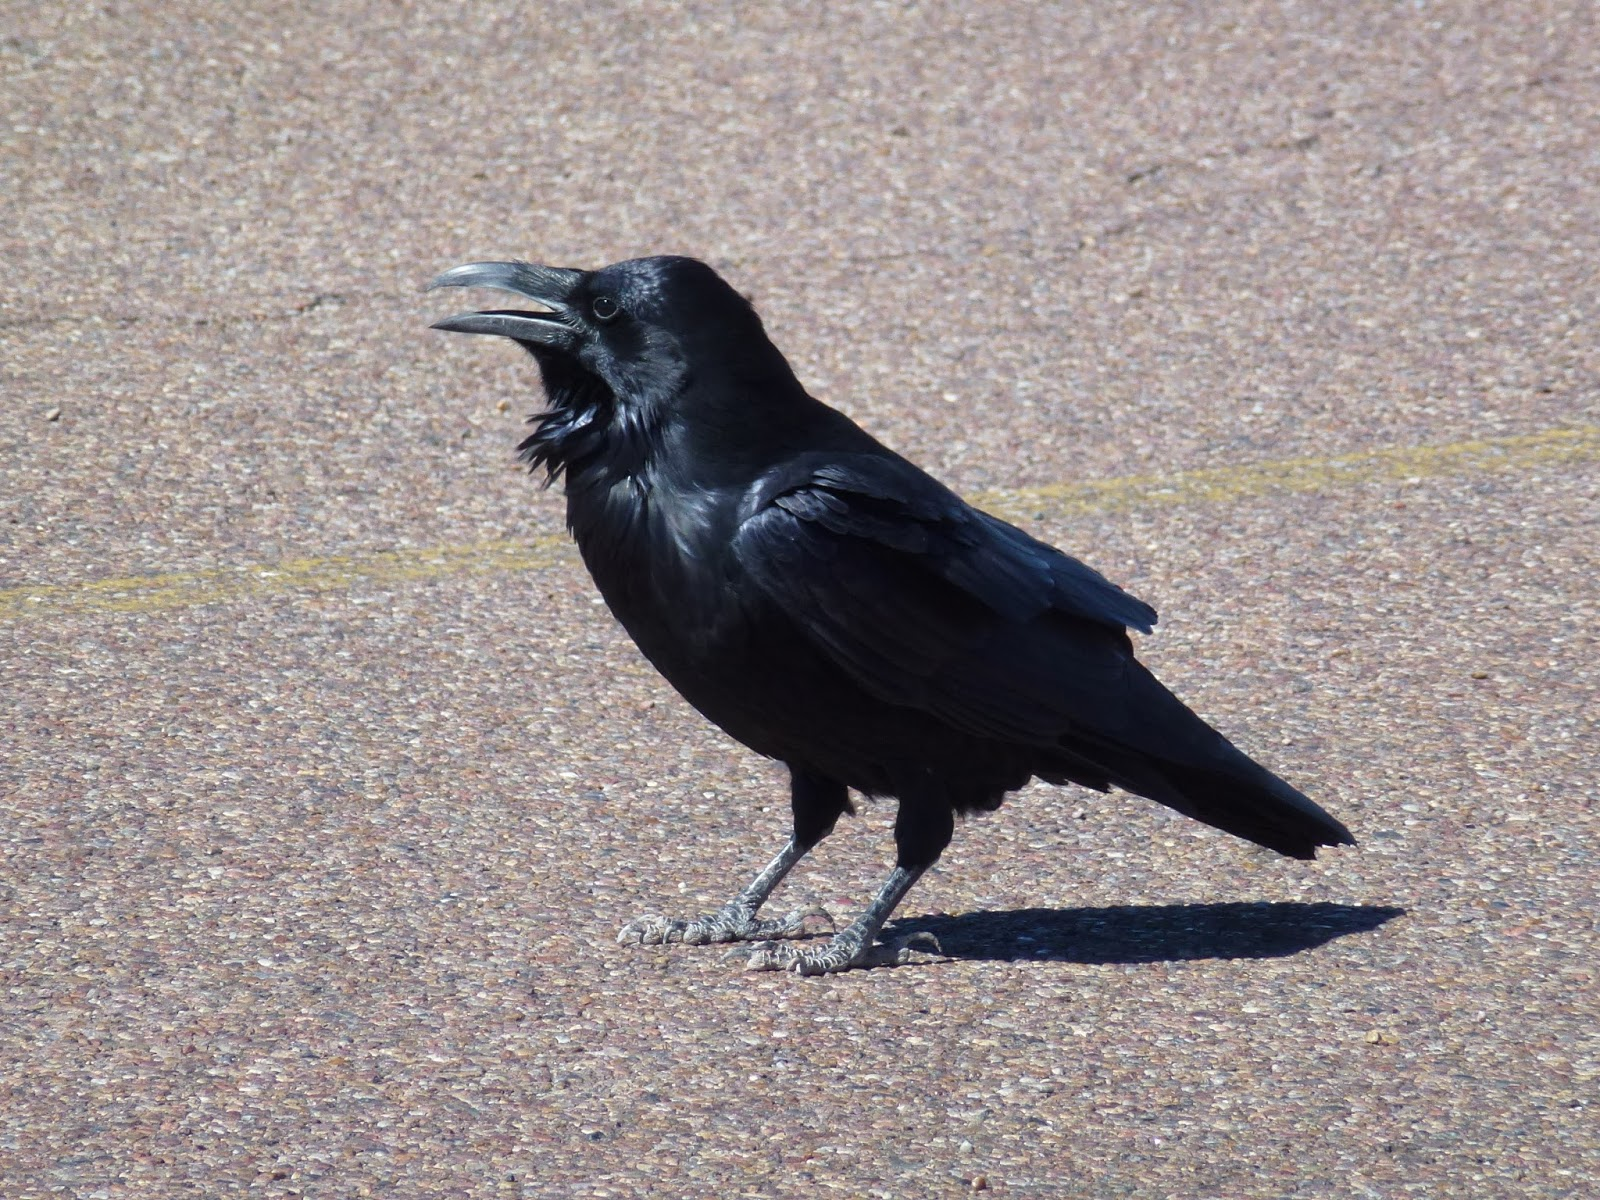 Image of a black raven bird.